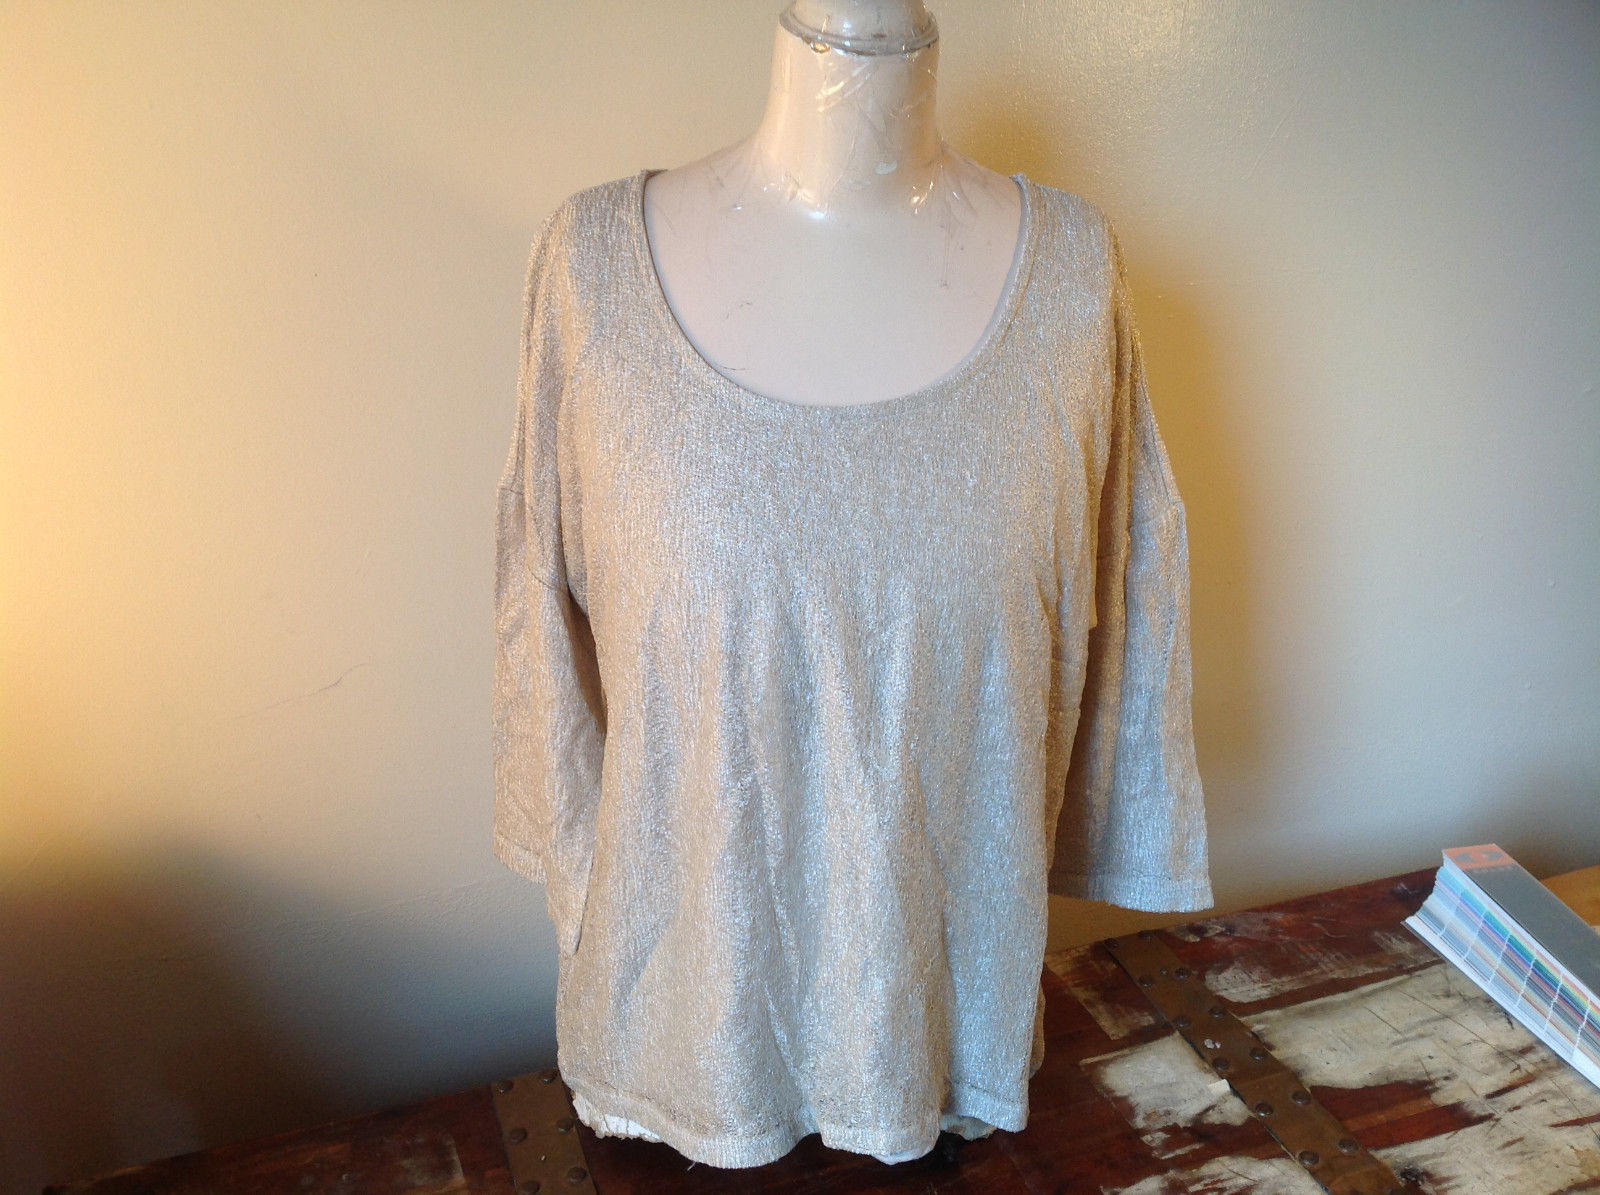 Tan Metallic Liz Claiborne Three Quarter Length Sleeve Length Shirt Size XL